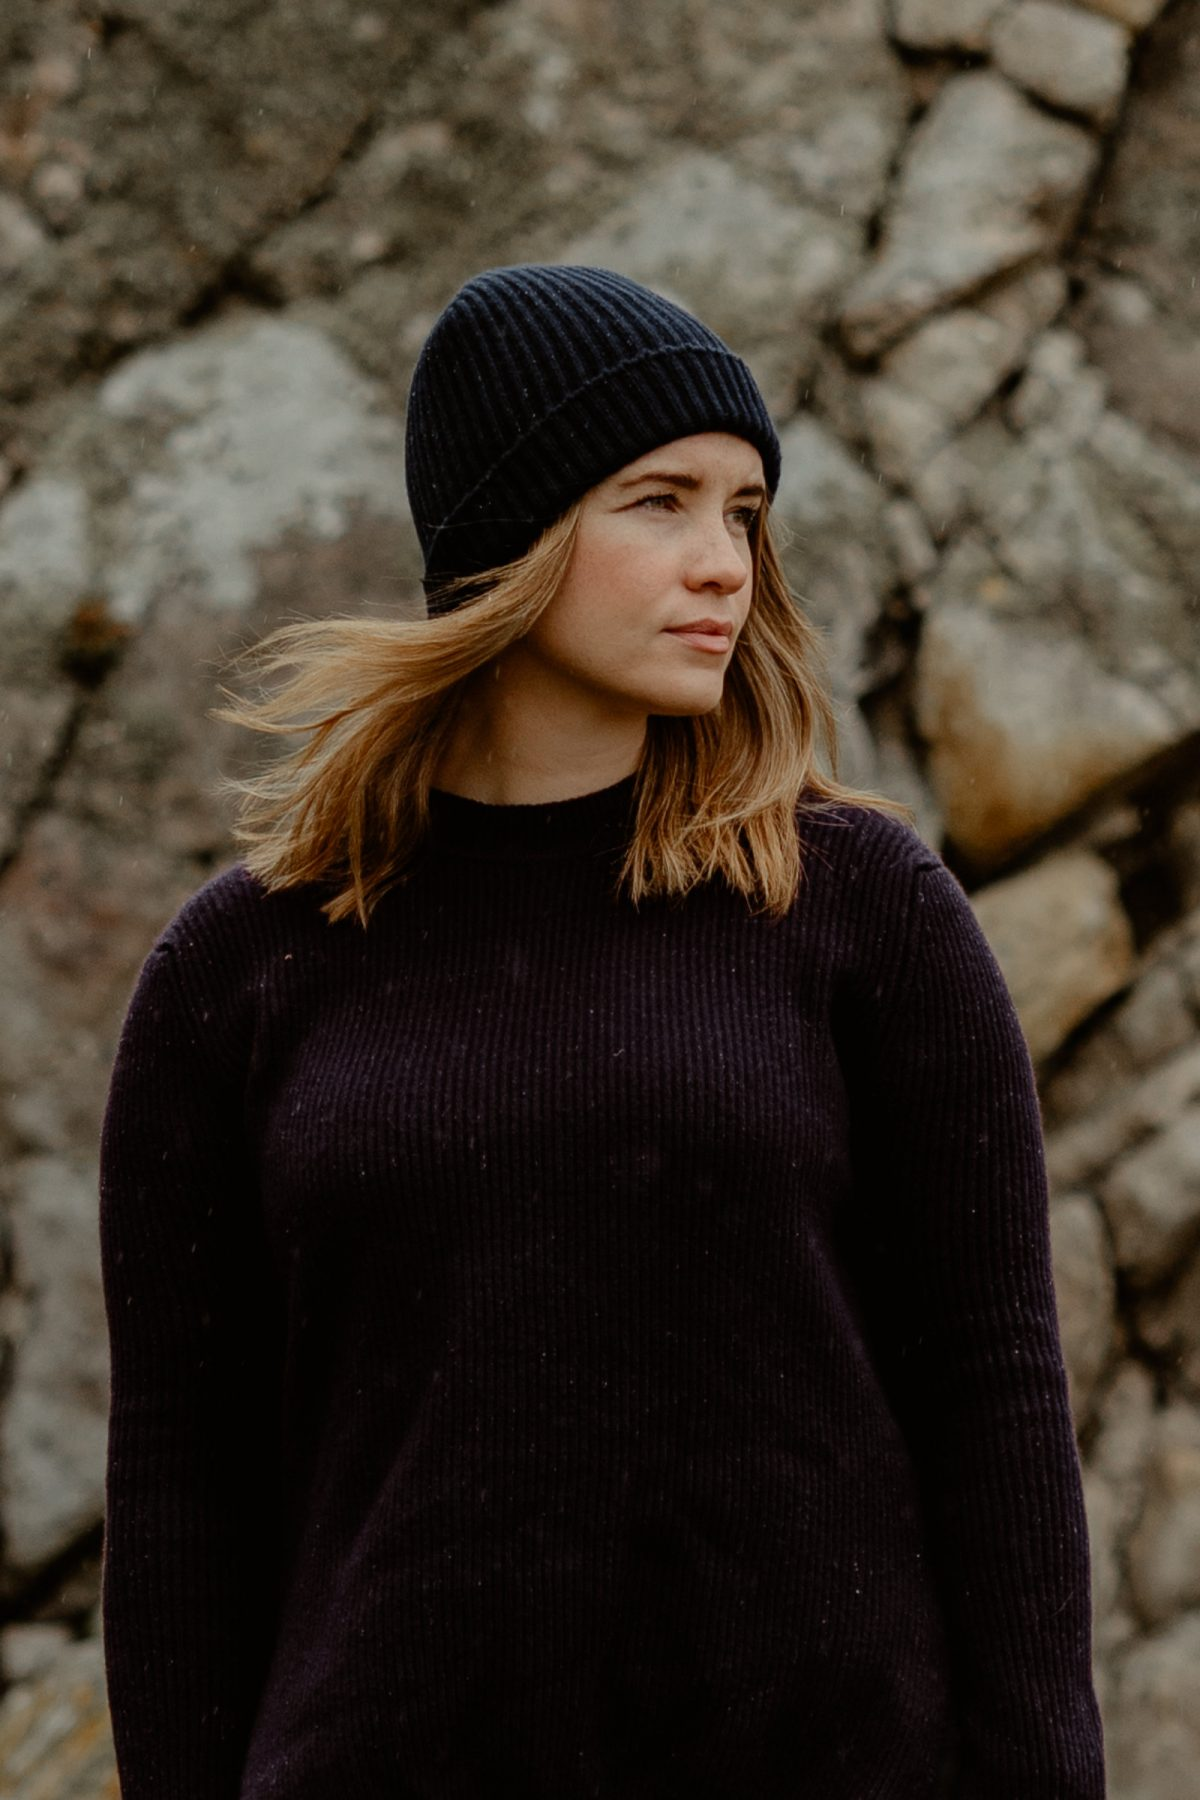 100% Pure Luxury Cashmere Wool Knit Beanie with Cardigan Stitch Ribbed - Made In Scotland - Navy Blue - Collection 001 - Riachi Studio